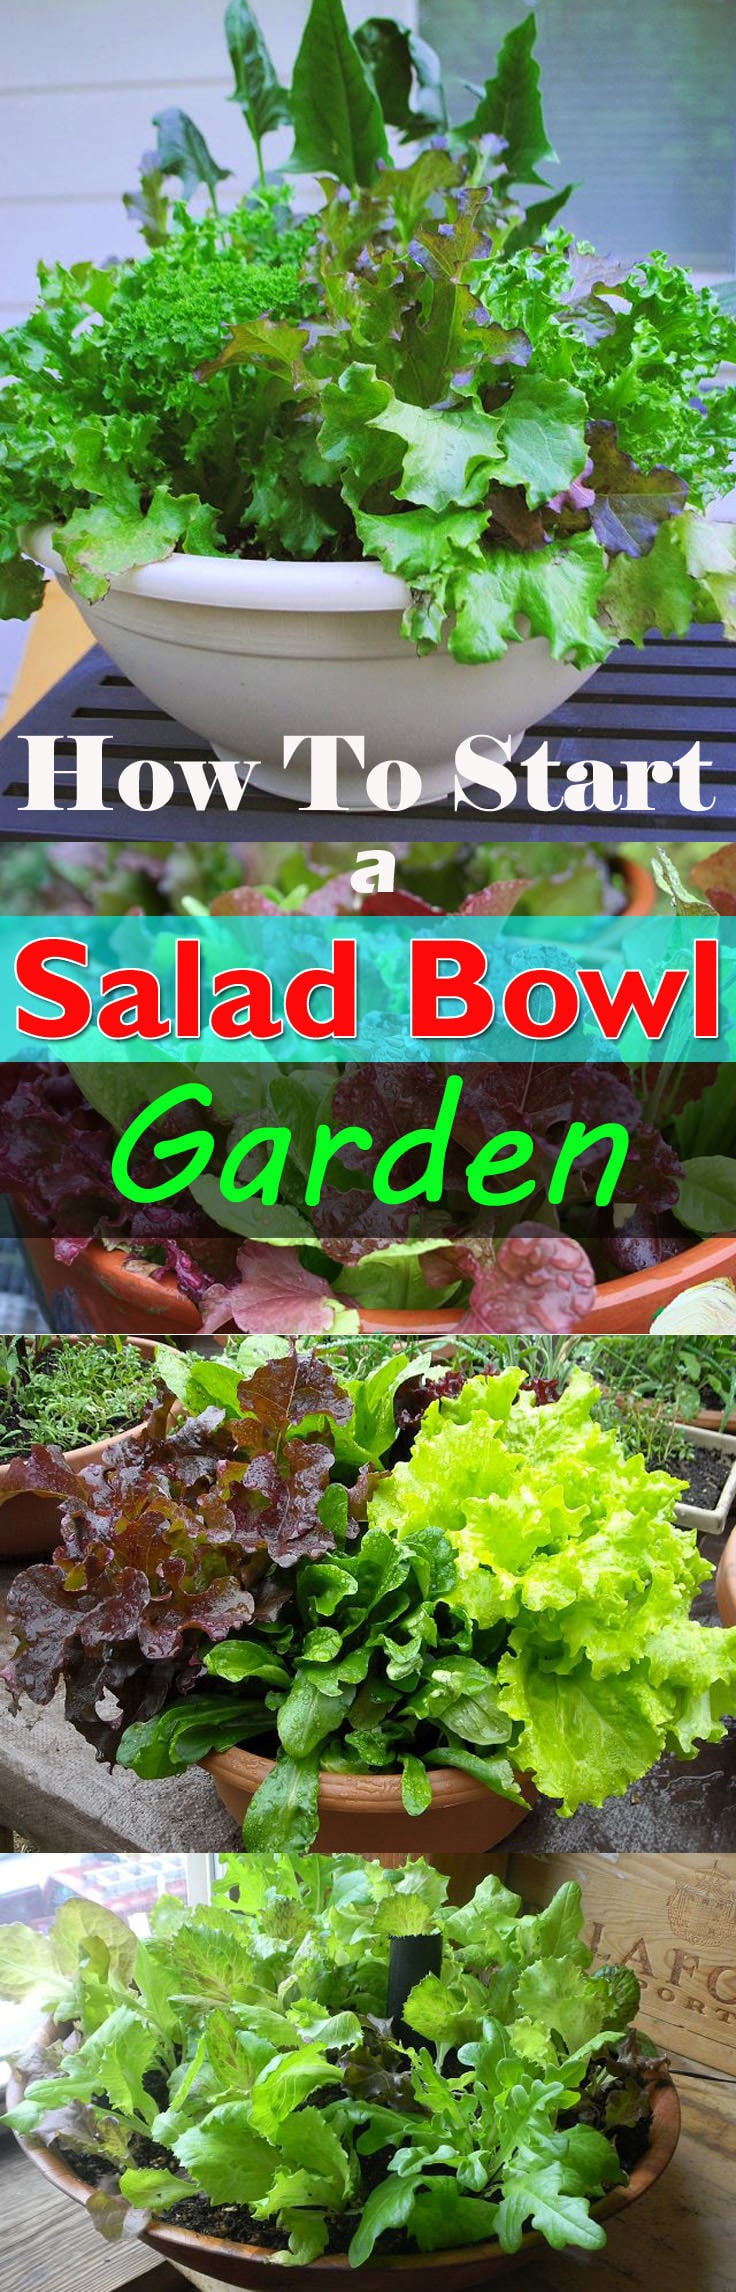 How To Start A Salad Bowl Garden